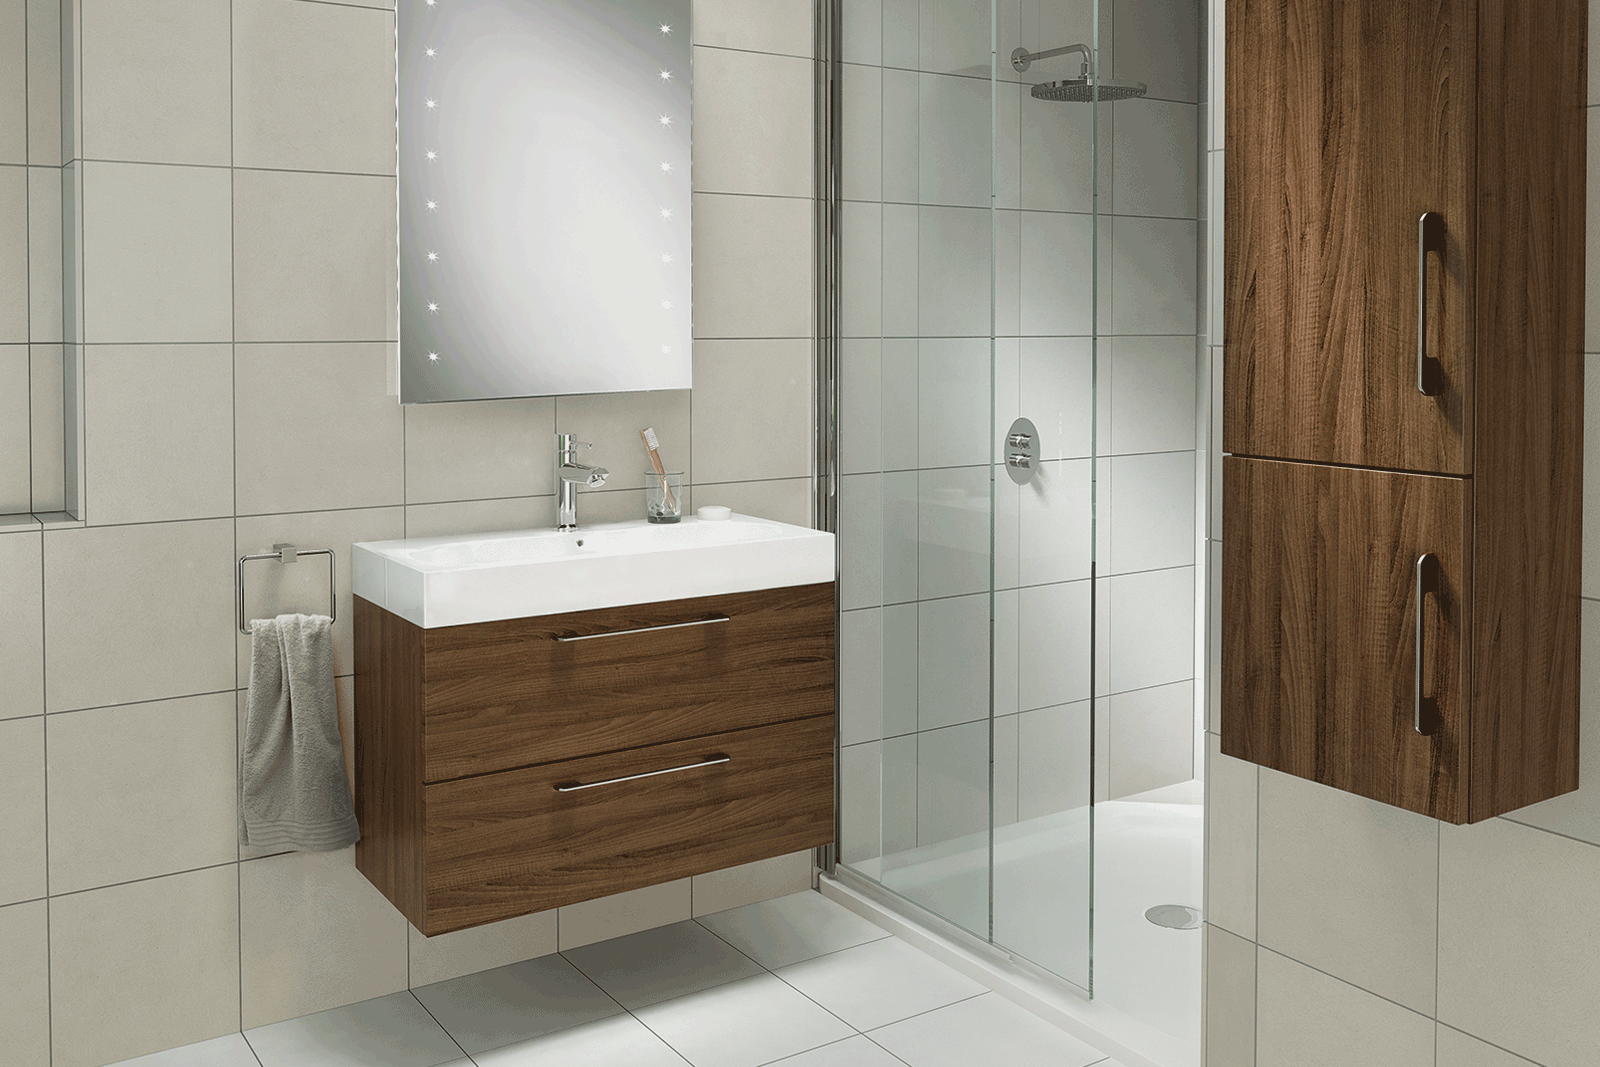 Hib tranquil walnut wetroom roomset